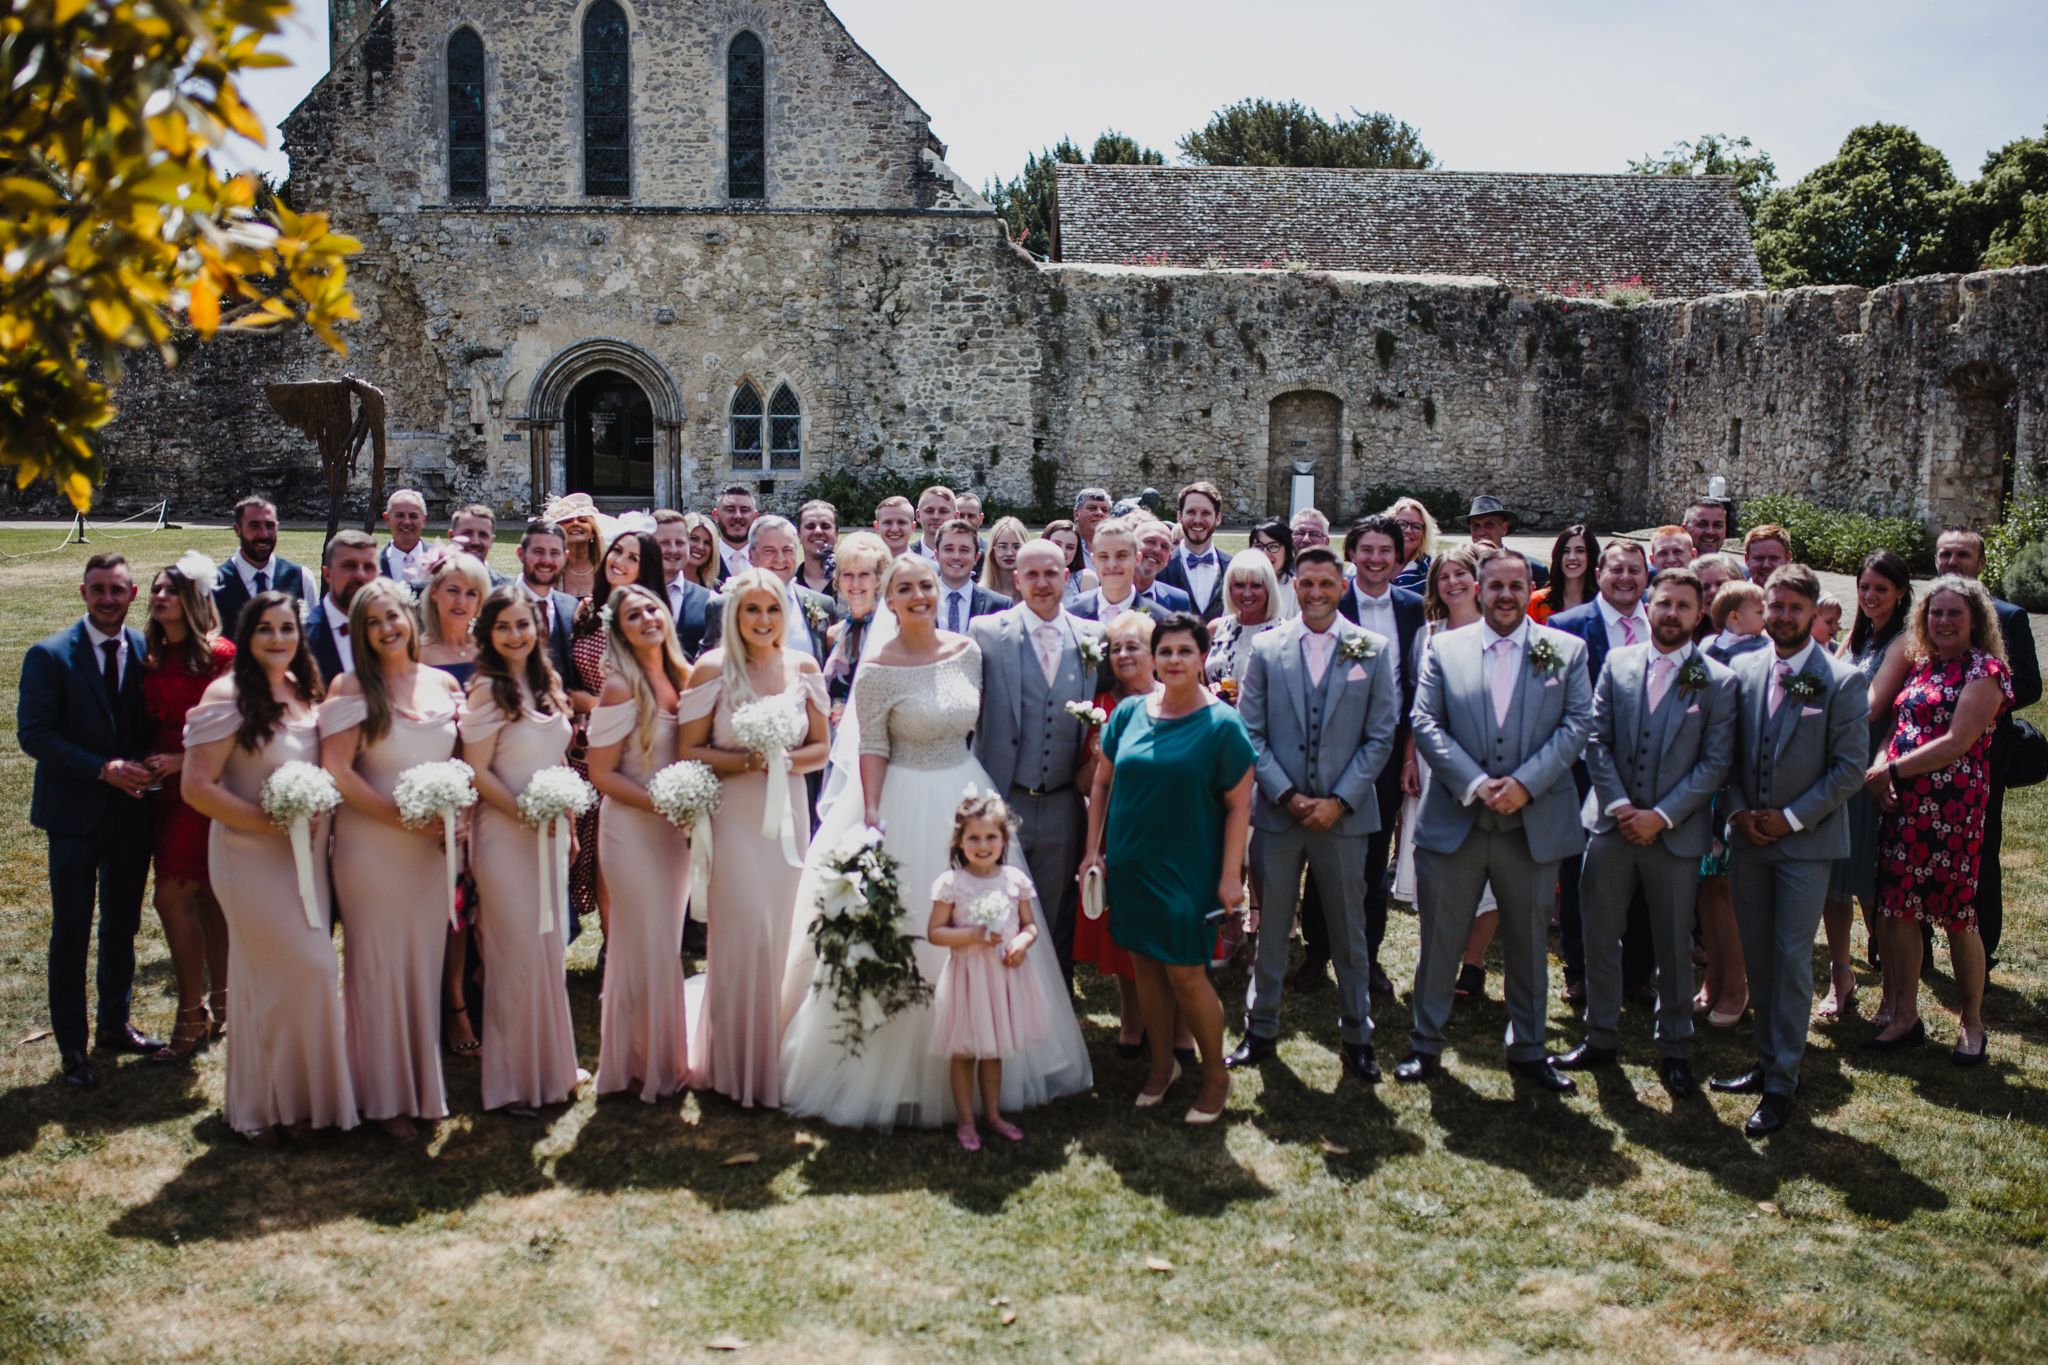 Grouo photo of wedding guests